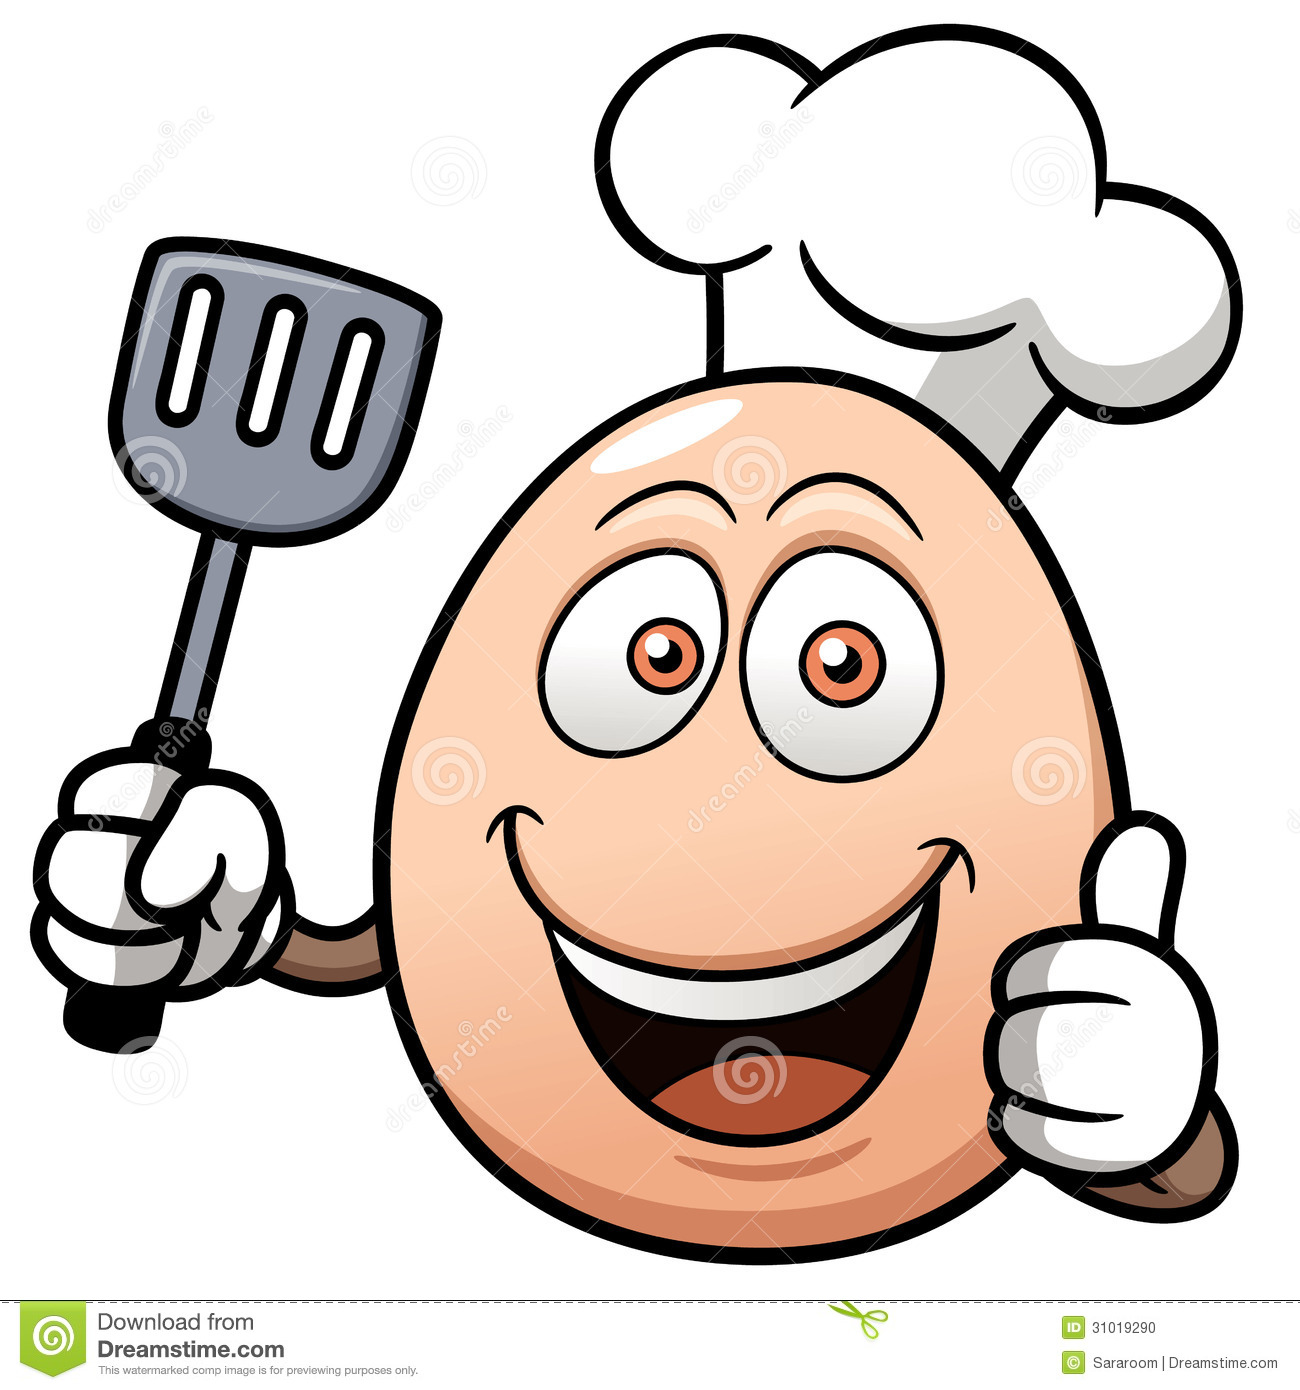 Cute Kitchen Ideas Chef Cartoon Egg Showing Thumb Funny Image